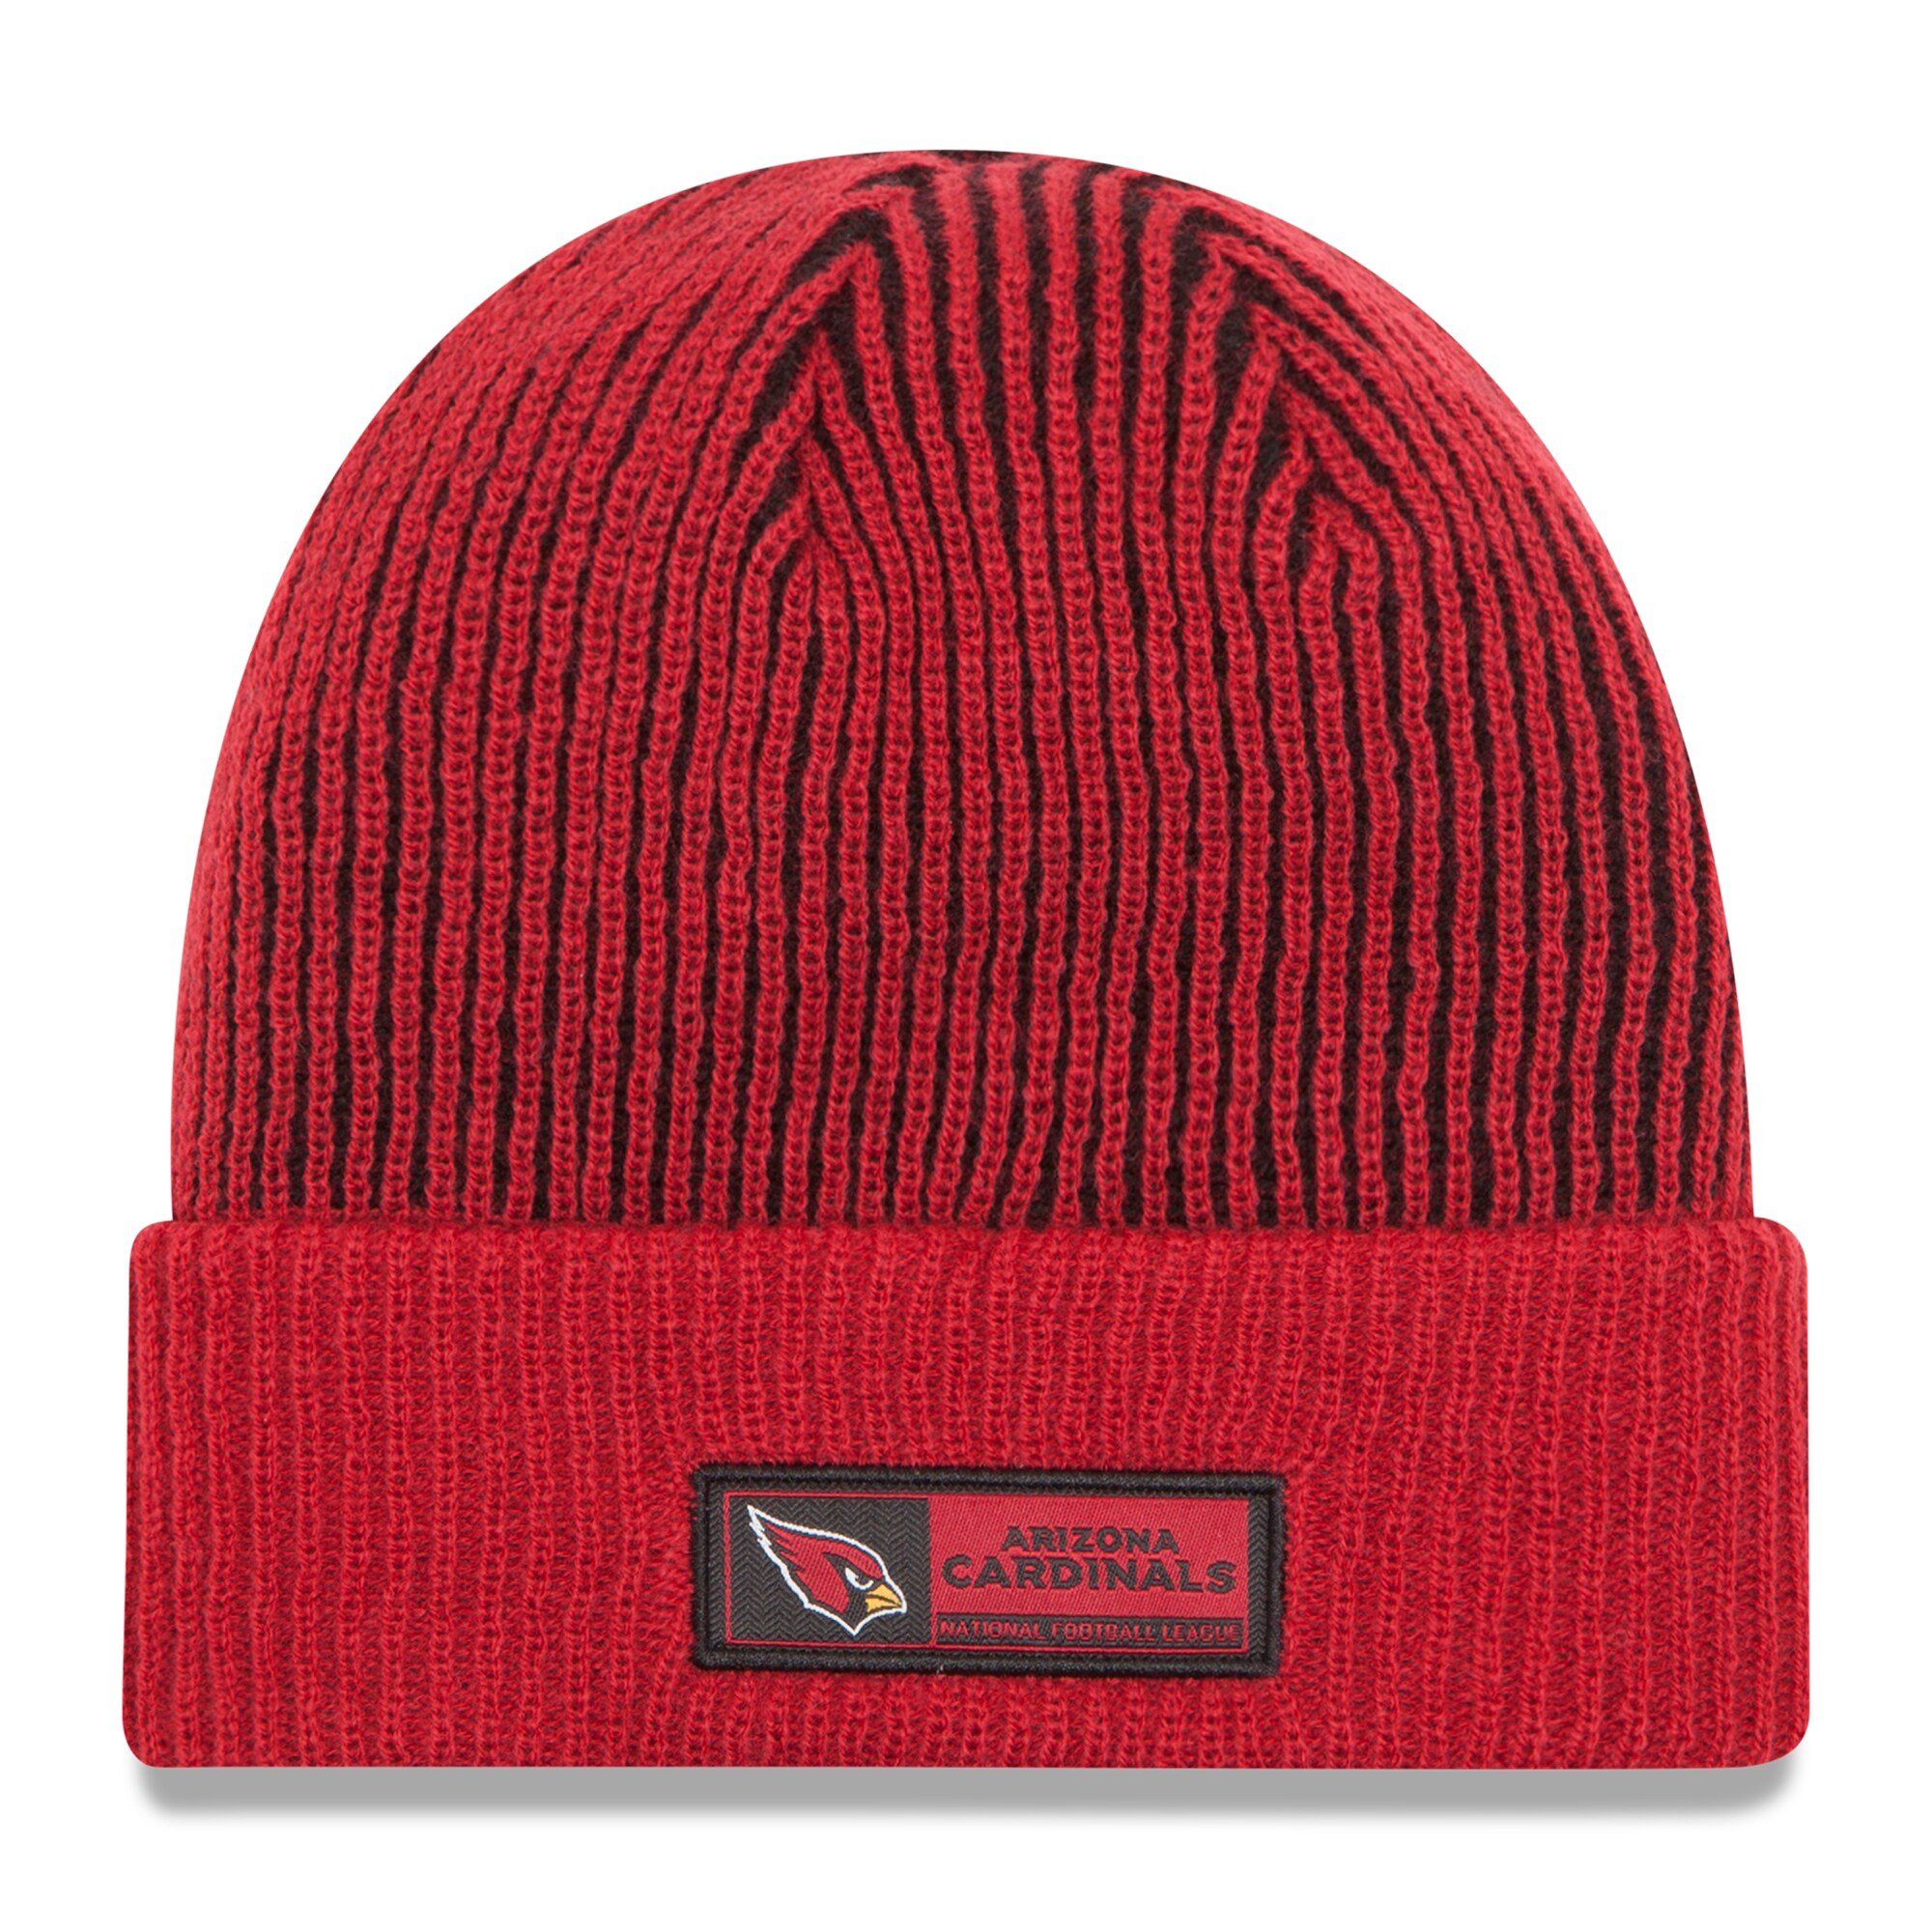 Arizona Cardinals New Era Sideline Official Tech Knit Hat - Cardinal